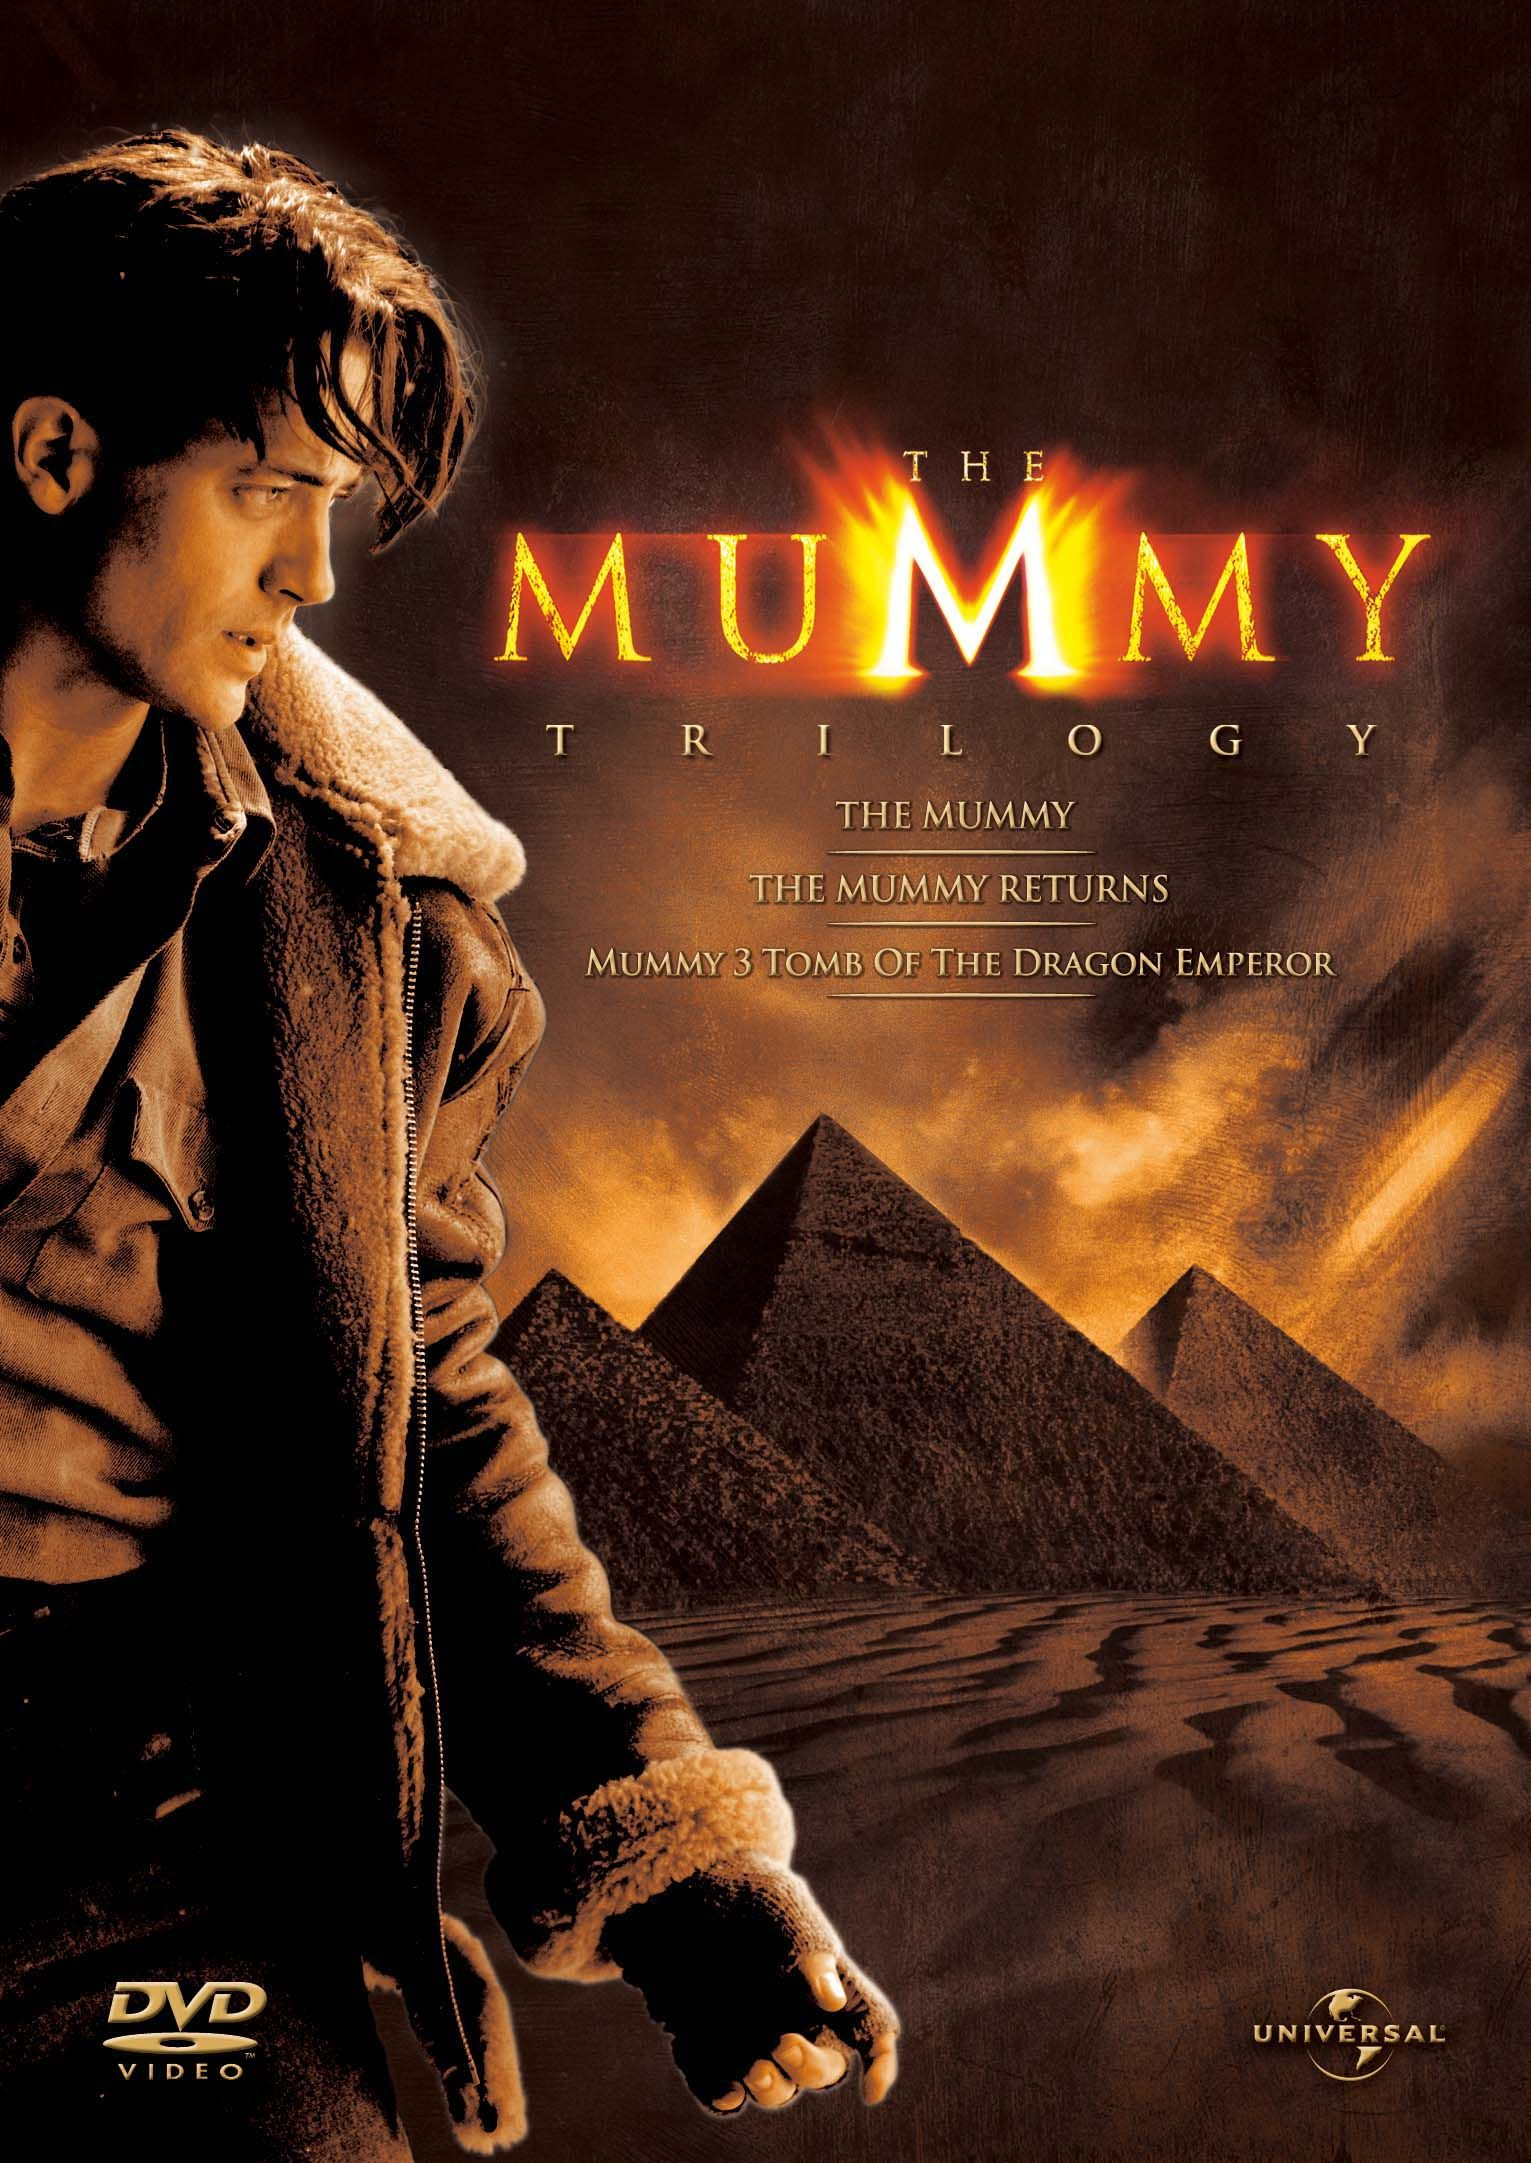 The Mummy Trilogy Blu Ray The Mummy The Mummy Returns And Tomb